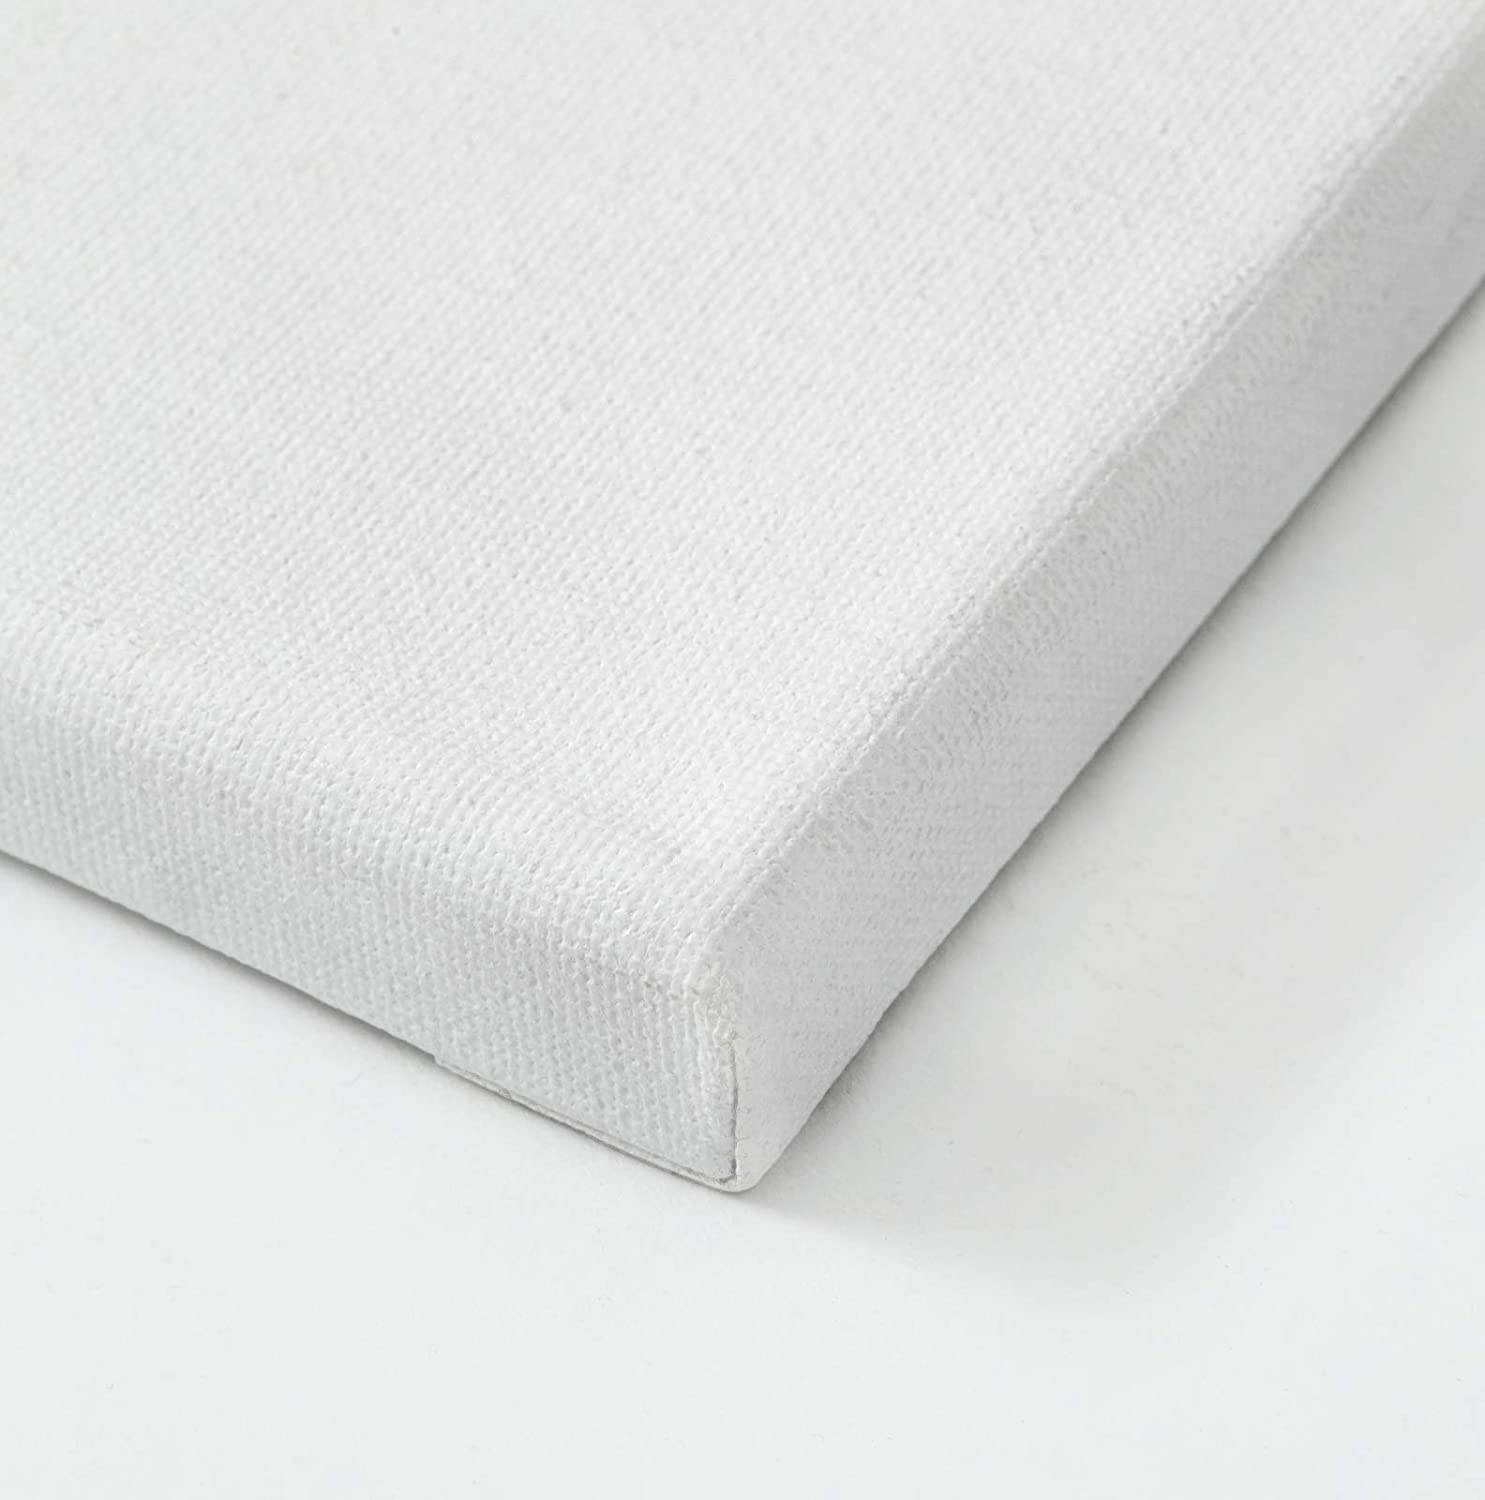 miniature 34 - Americanflat Stretched Canvas in White 100% Cotton Wooden Frames & Acid Free